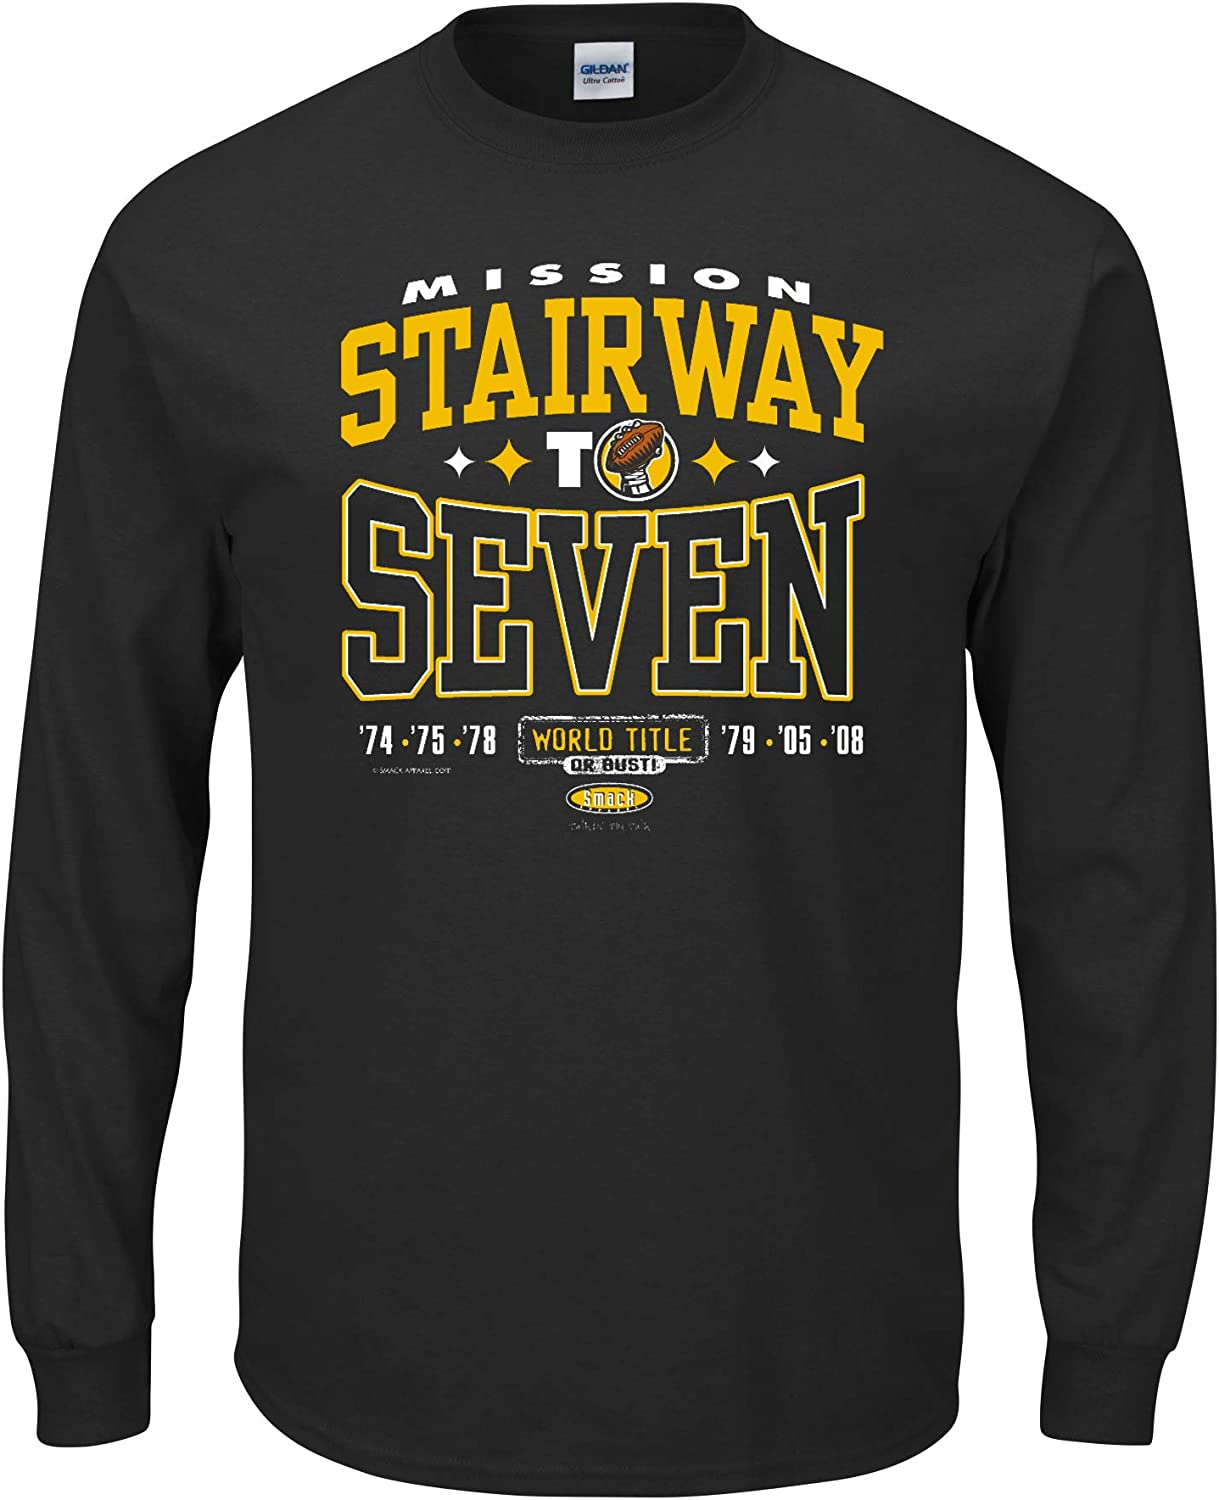 Stairway to Seven World Title or Bust Black T-Shirt Sm-5X Pittsburgh Football Fans